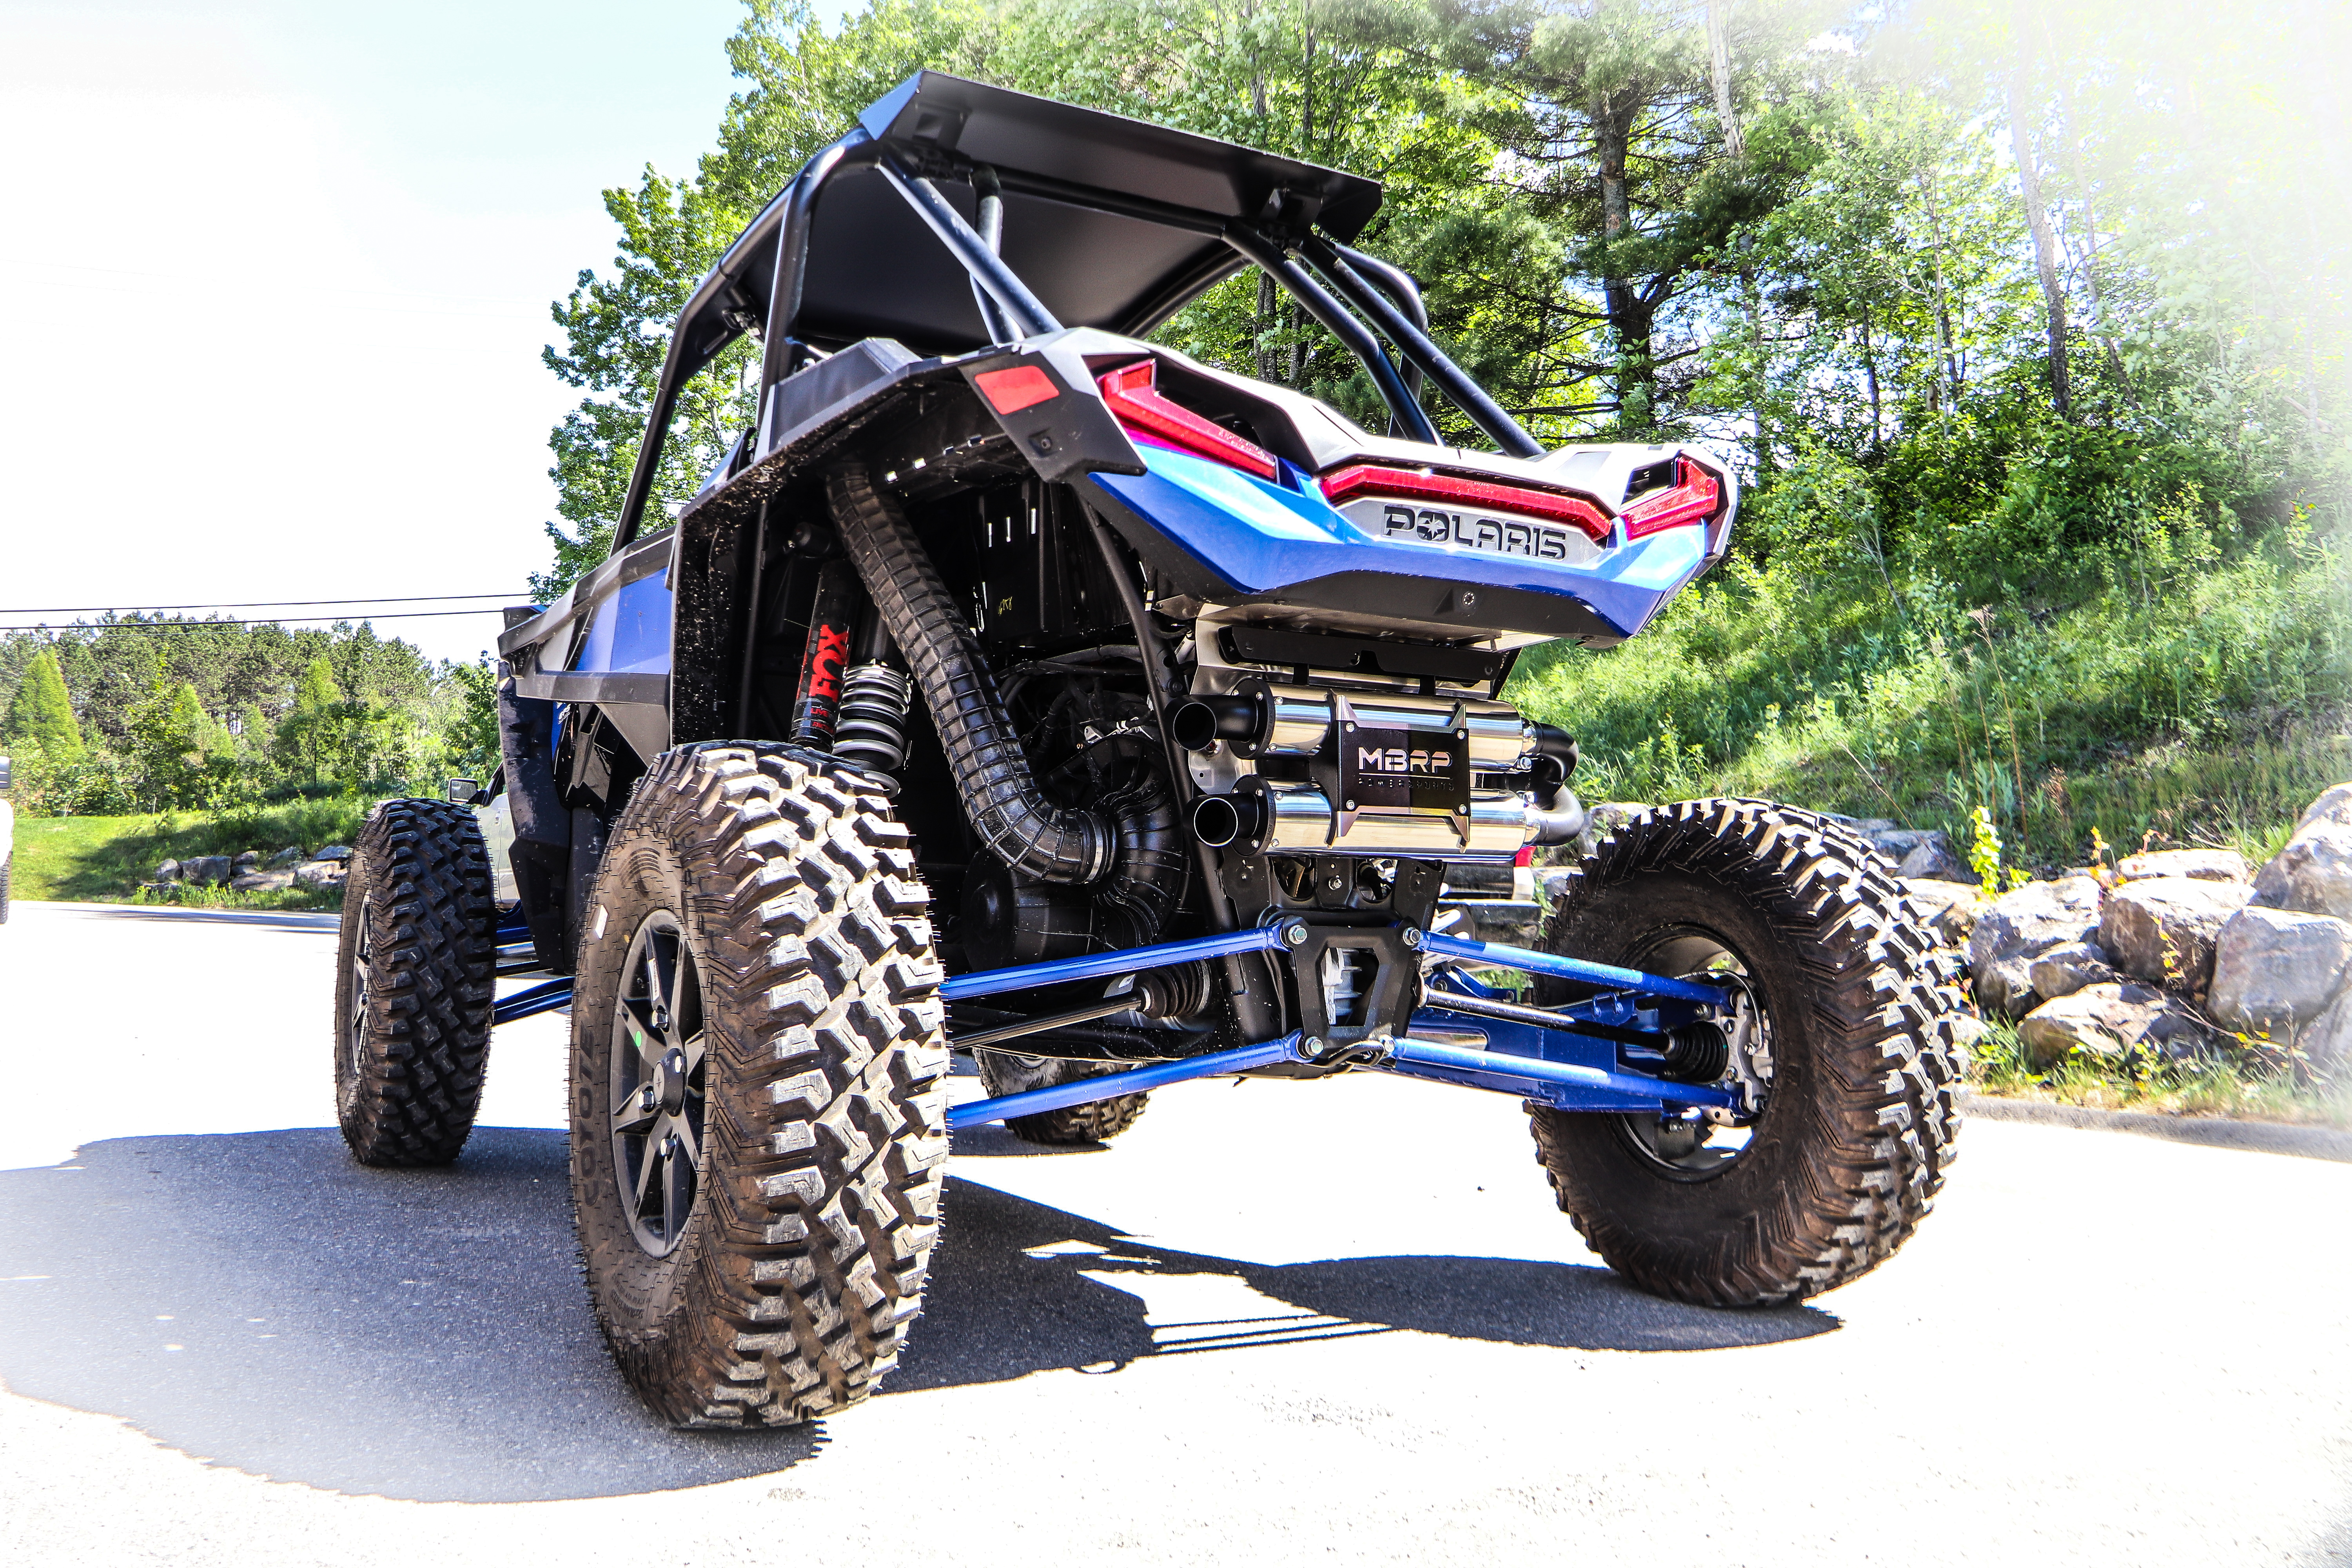 MBRP Powersports RZR XP 1000 Slip-on Dual Stack Performance Exhaust